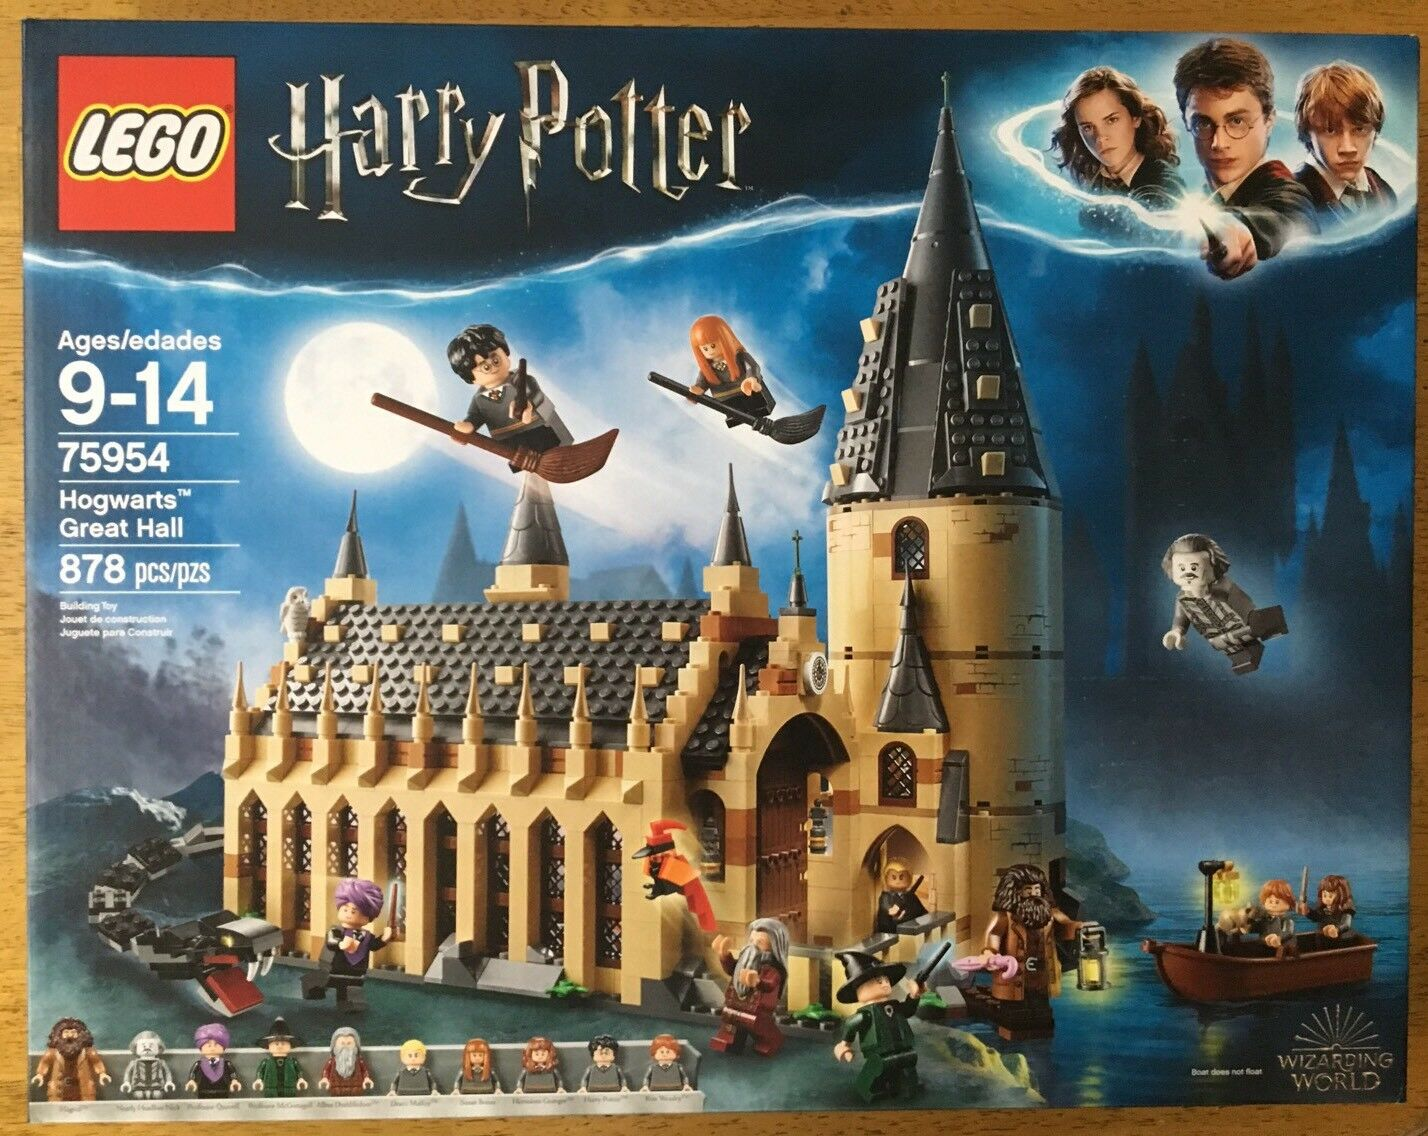 LEGO Harry Potter Hogwarts Great Hall 75954 Will Ship Inside Separate Box